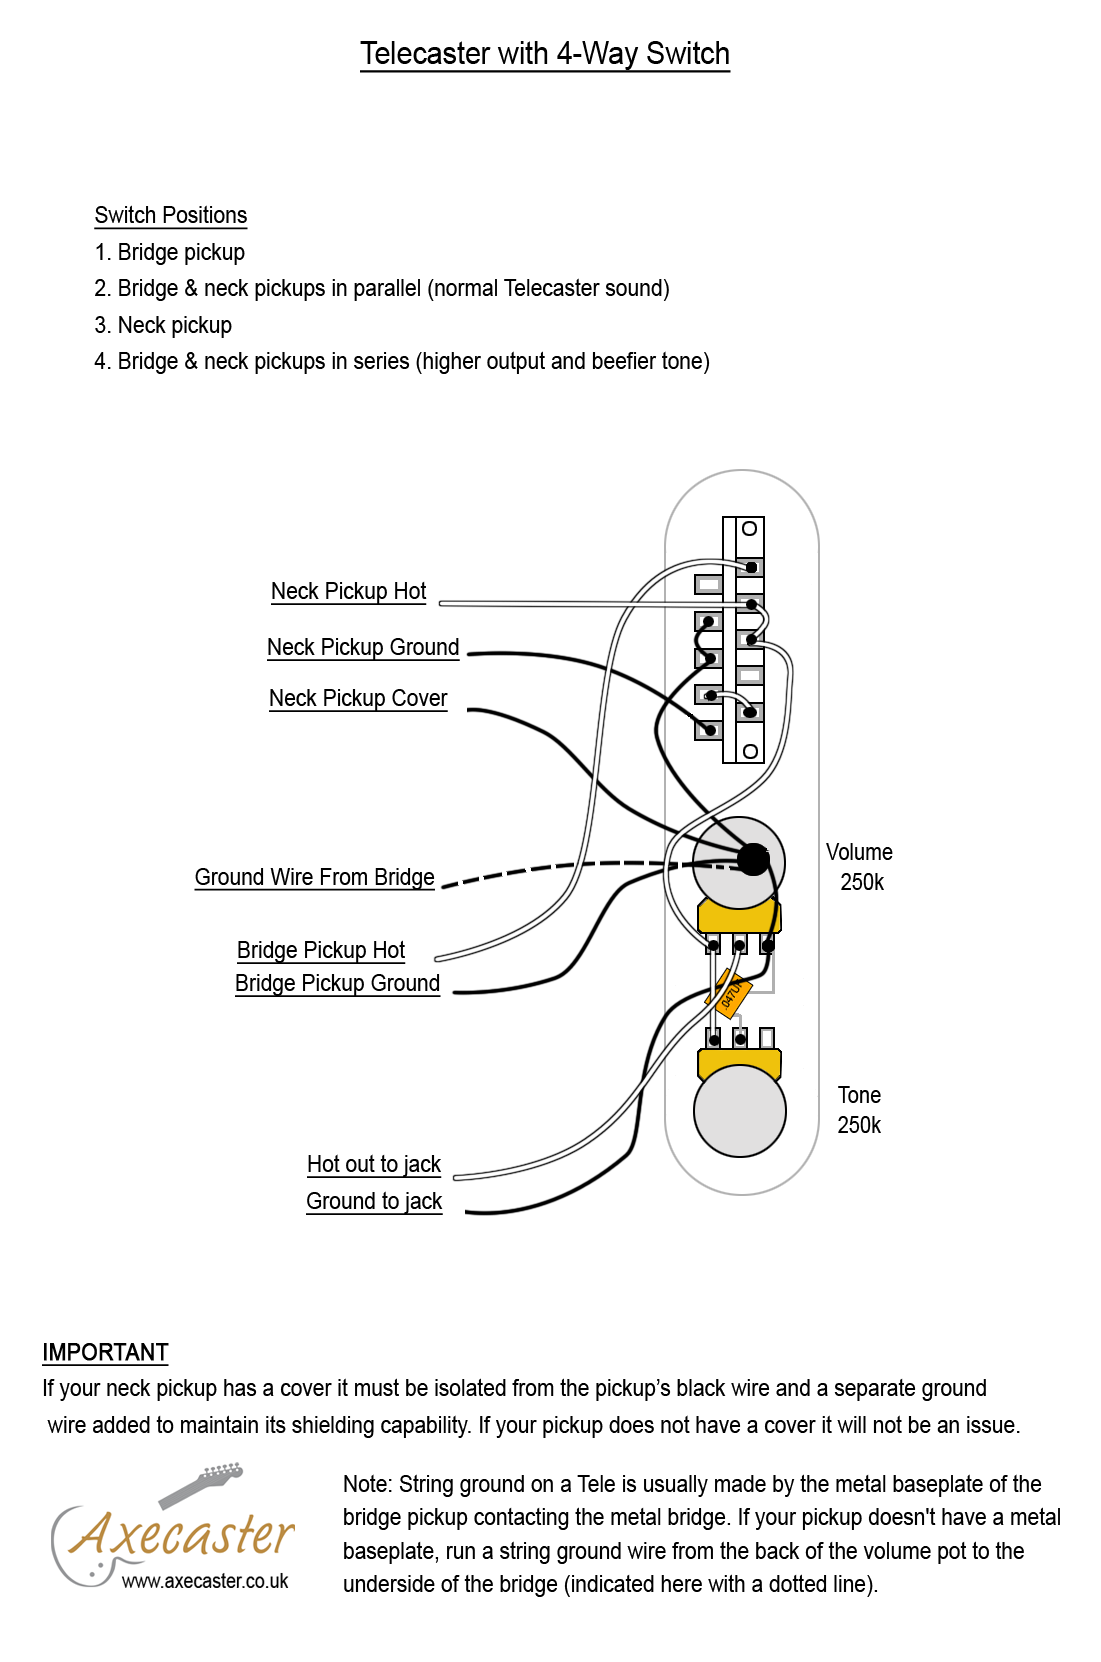 wiring diagrams axecaster, build it how you want itwiring diagrams for both bridge parallel neck series and